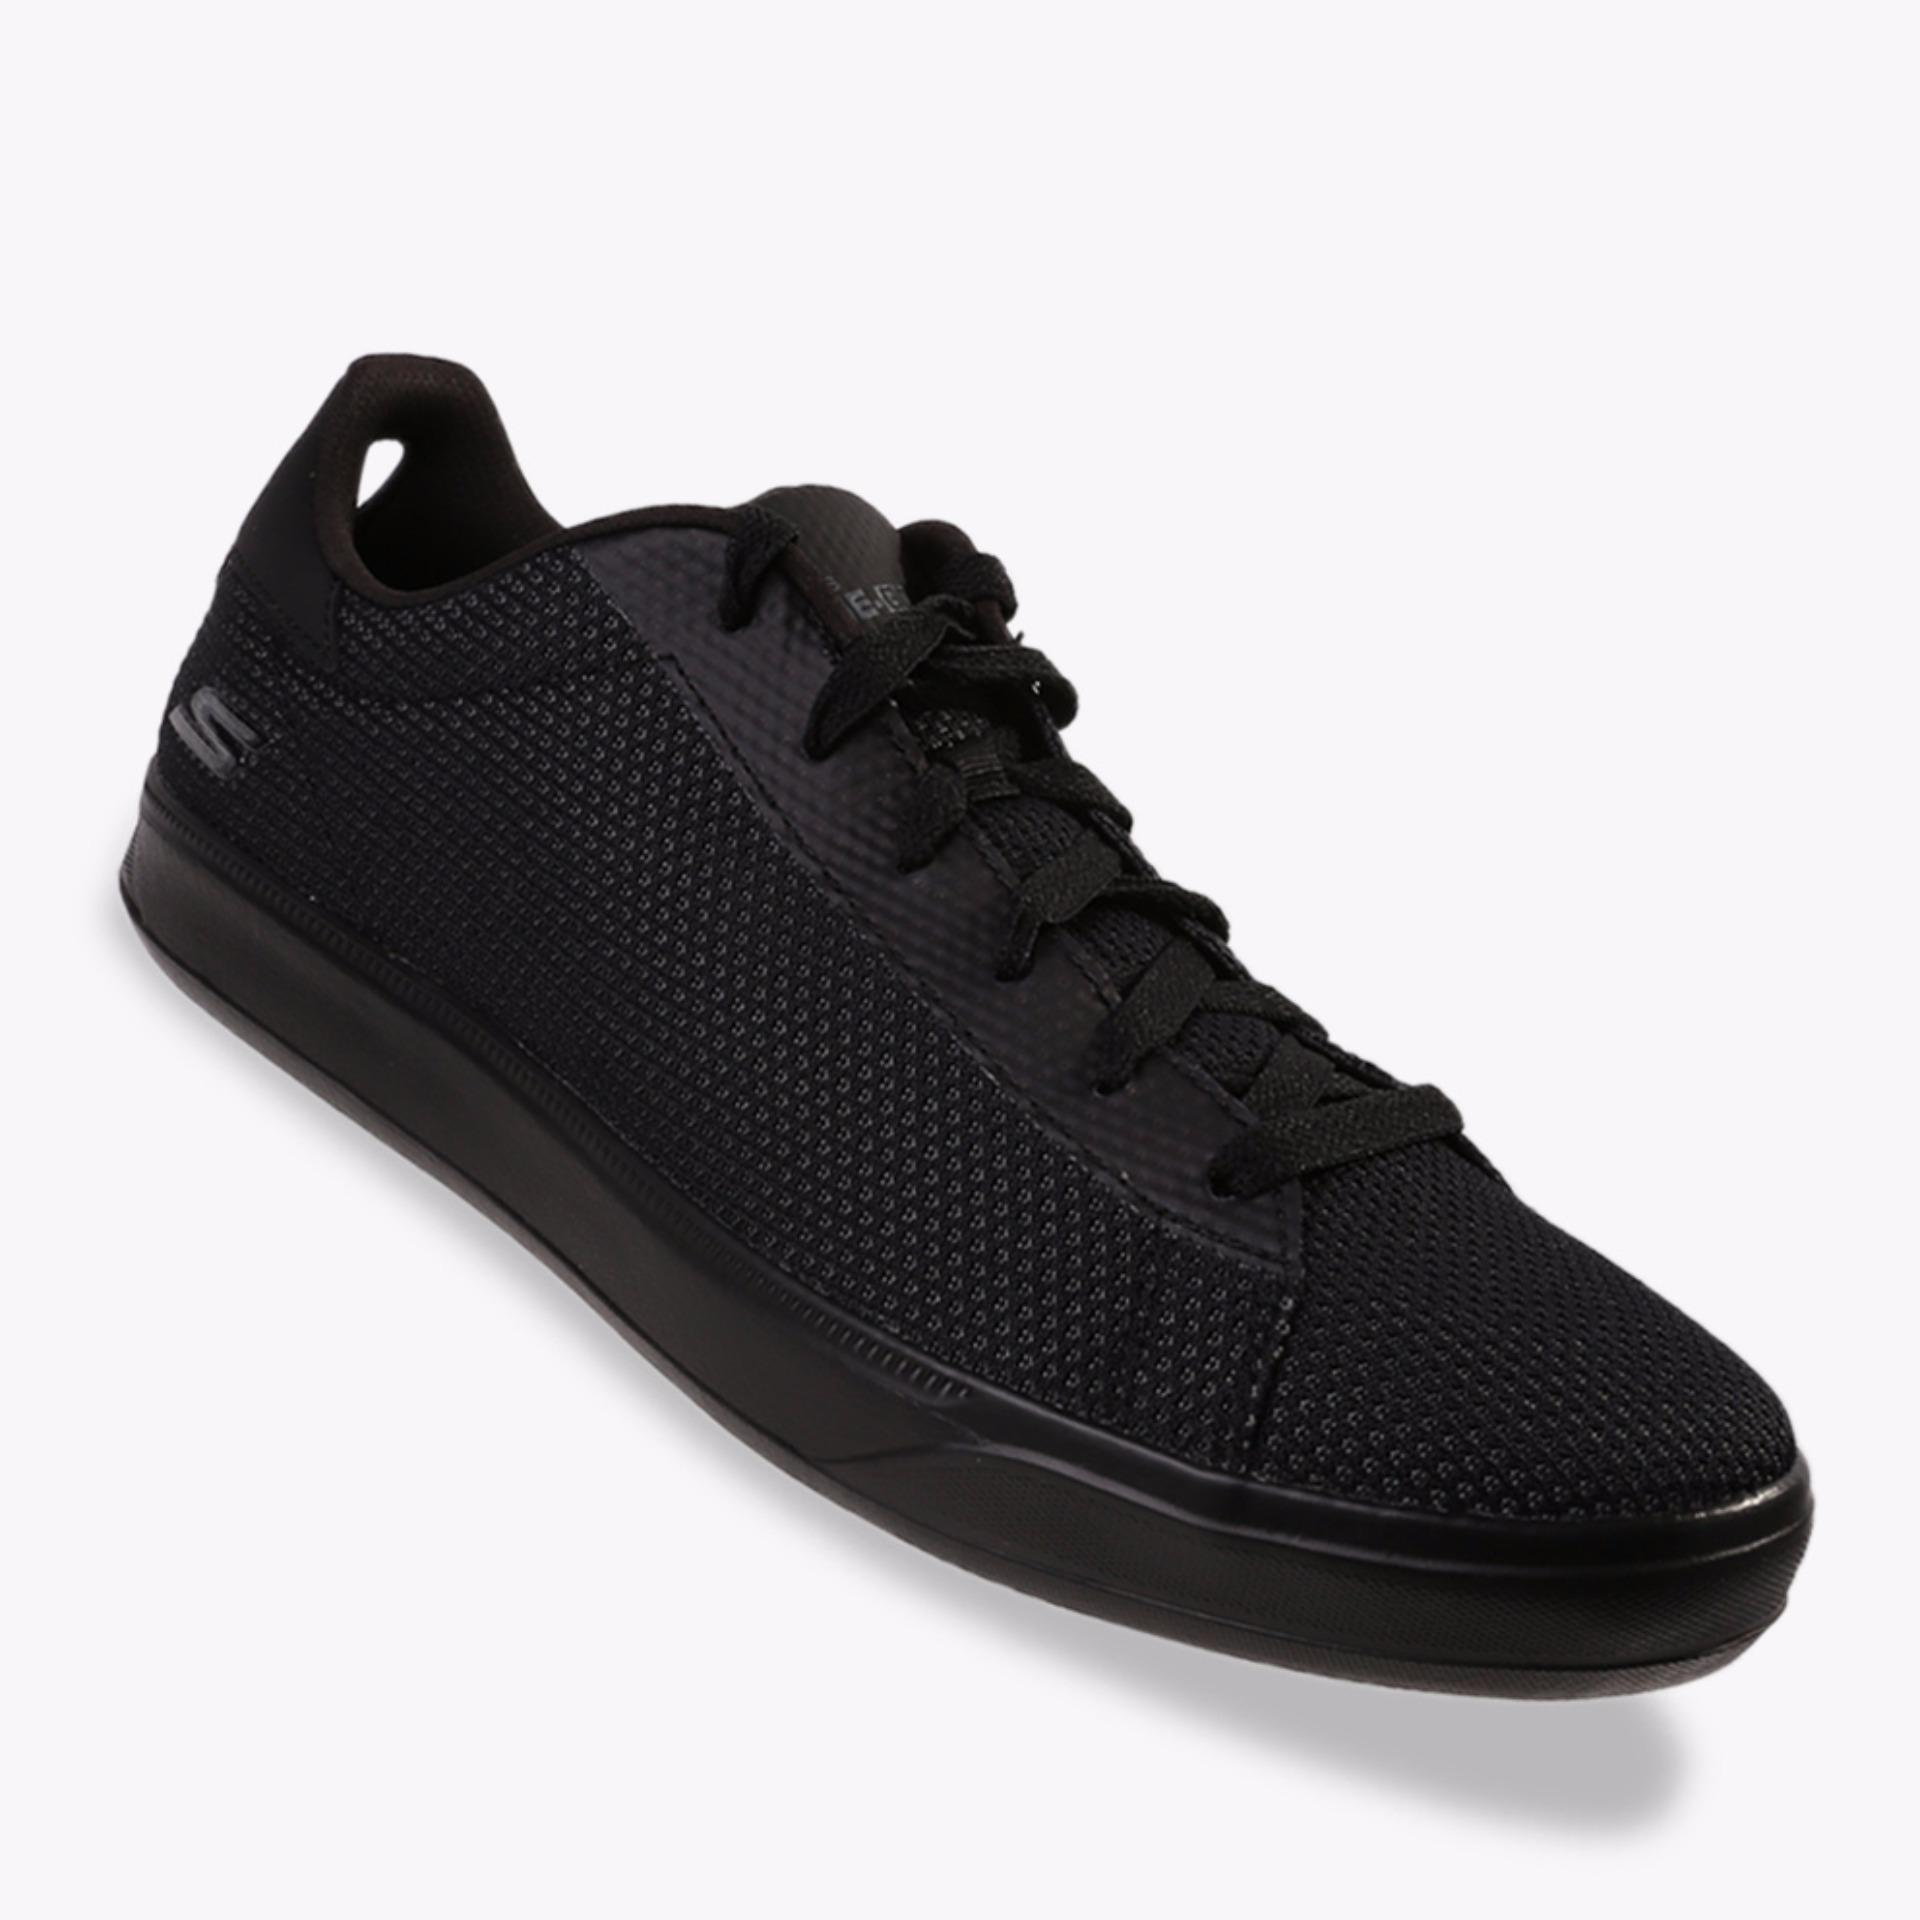 Berapa Harga Skechers Govulc 2 Eminent Men S Sneakers Shoes Hitam Skechers Di Indonesia